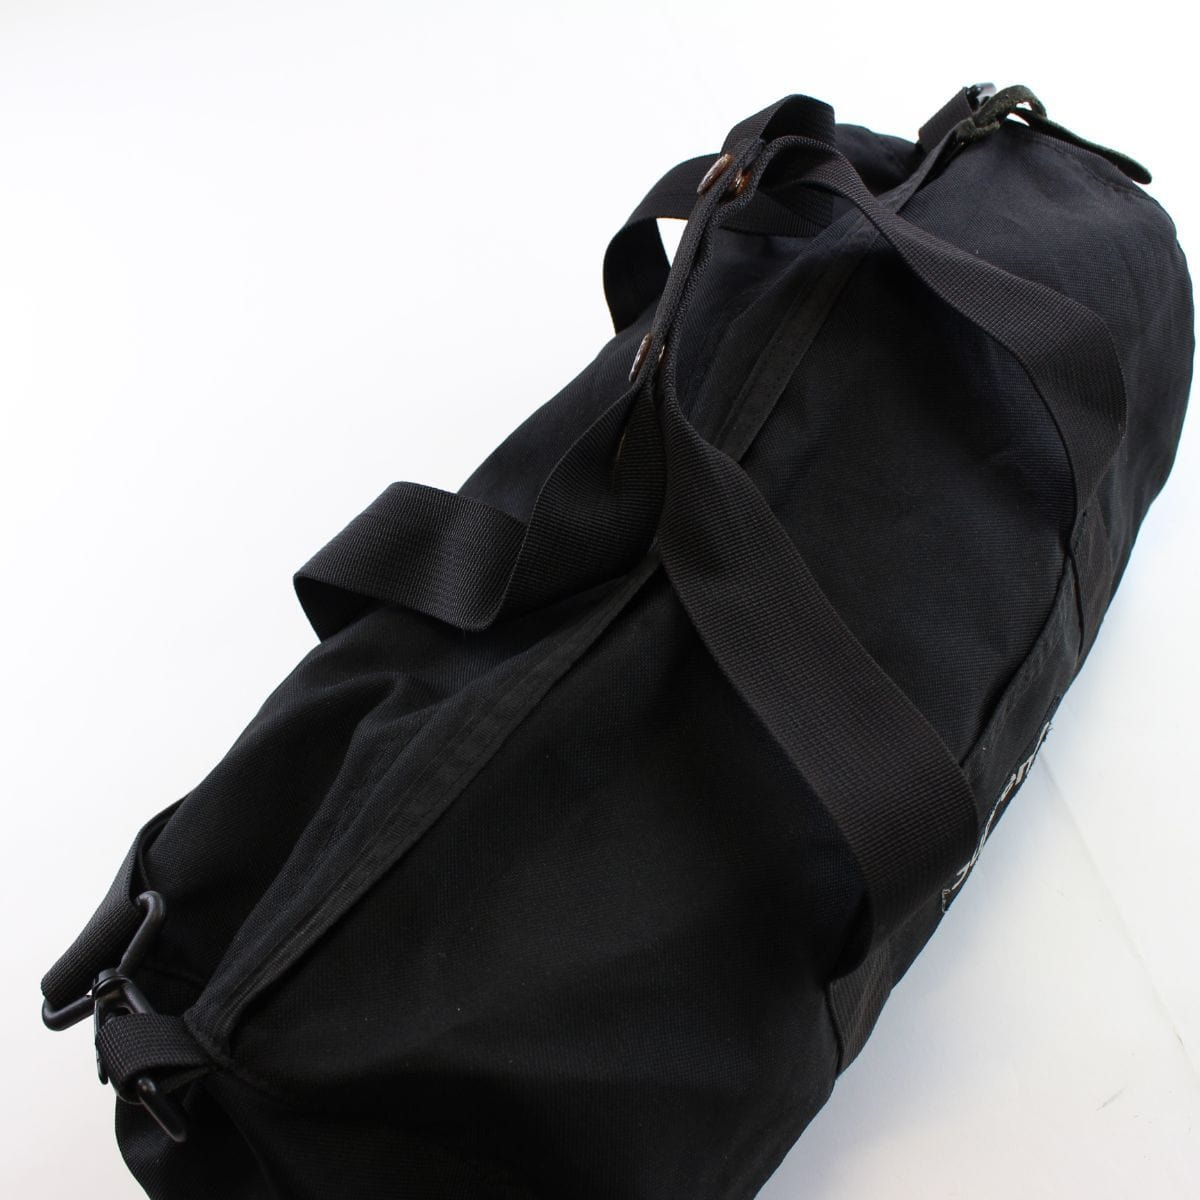 supreme black duffle bag early 00s - SaruGeneral